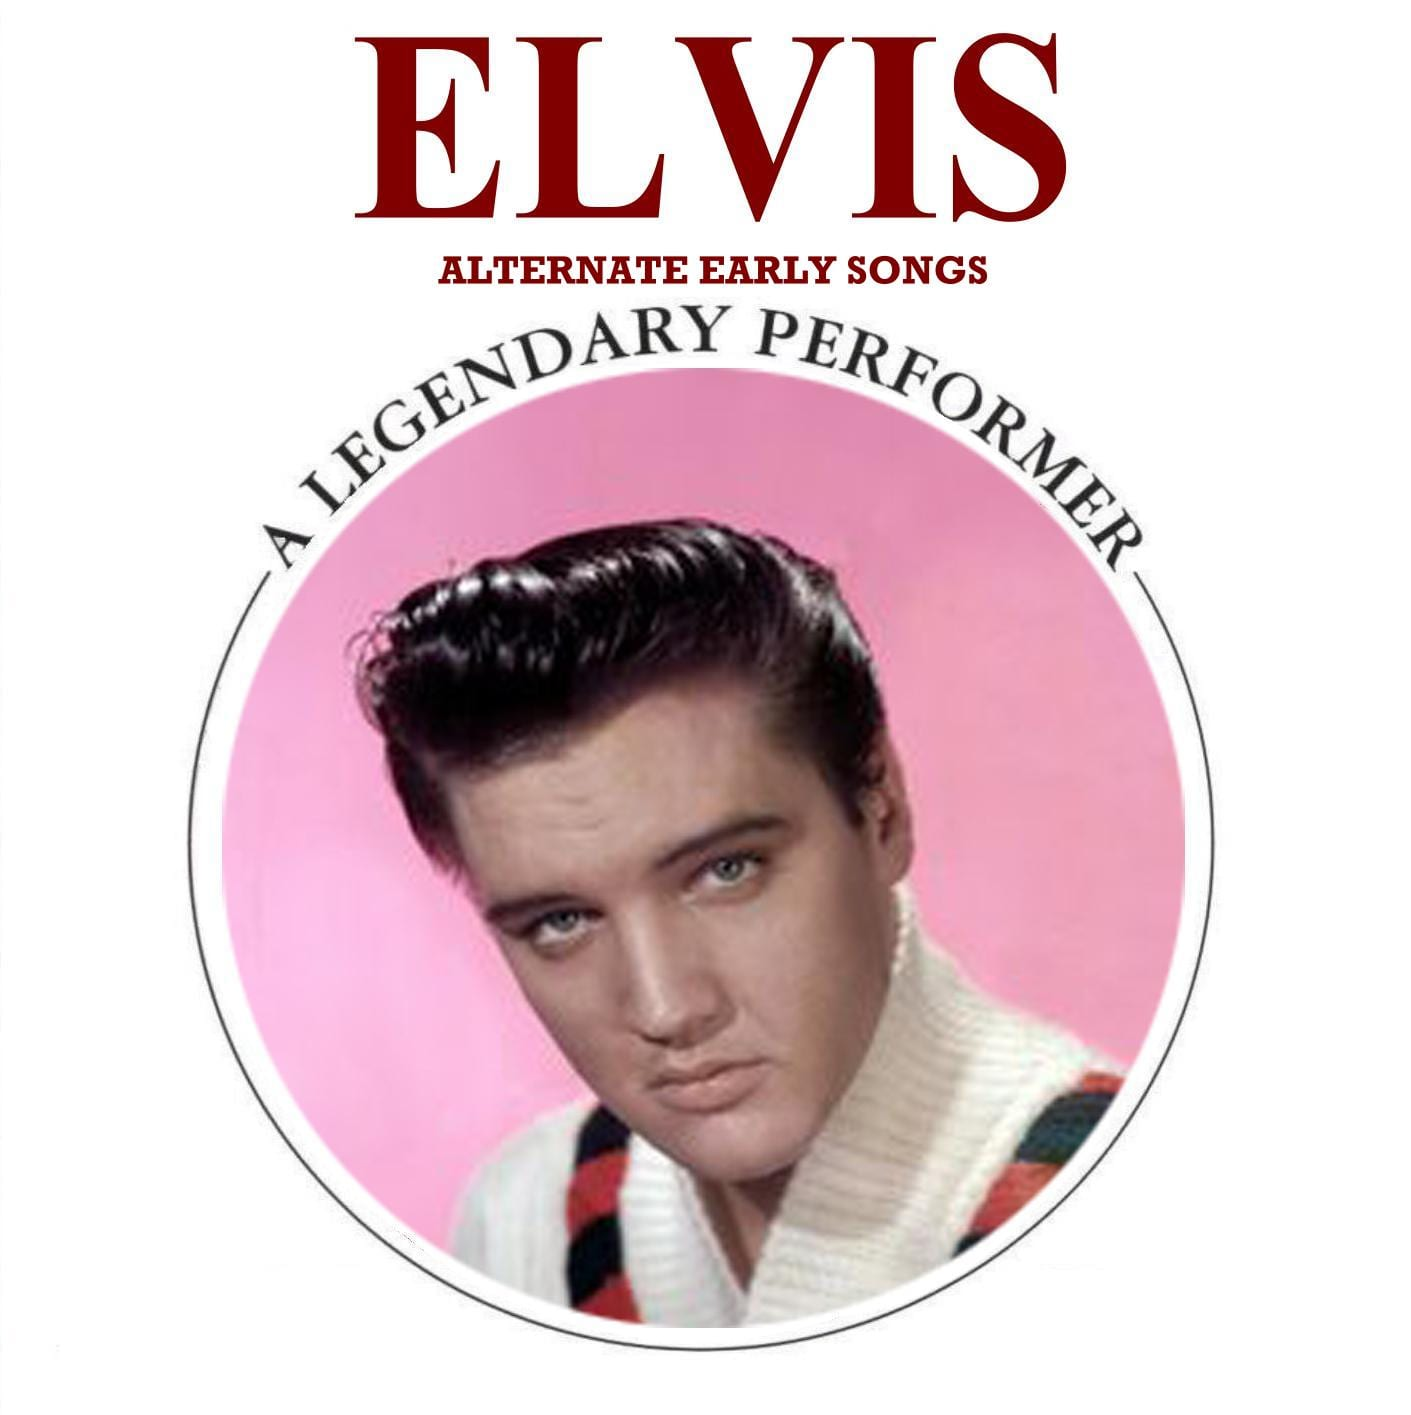 Elvis Presley - A Legendary Performer, Blue Velvet (2011) CD 9